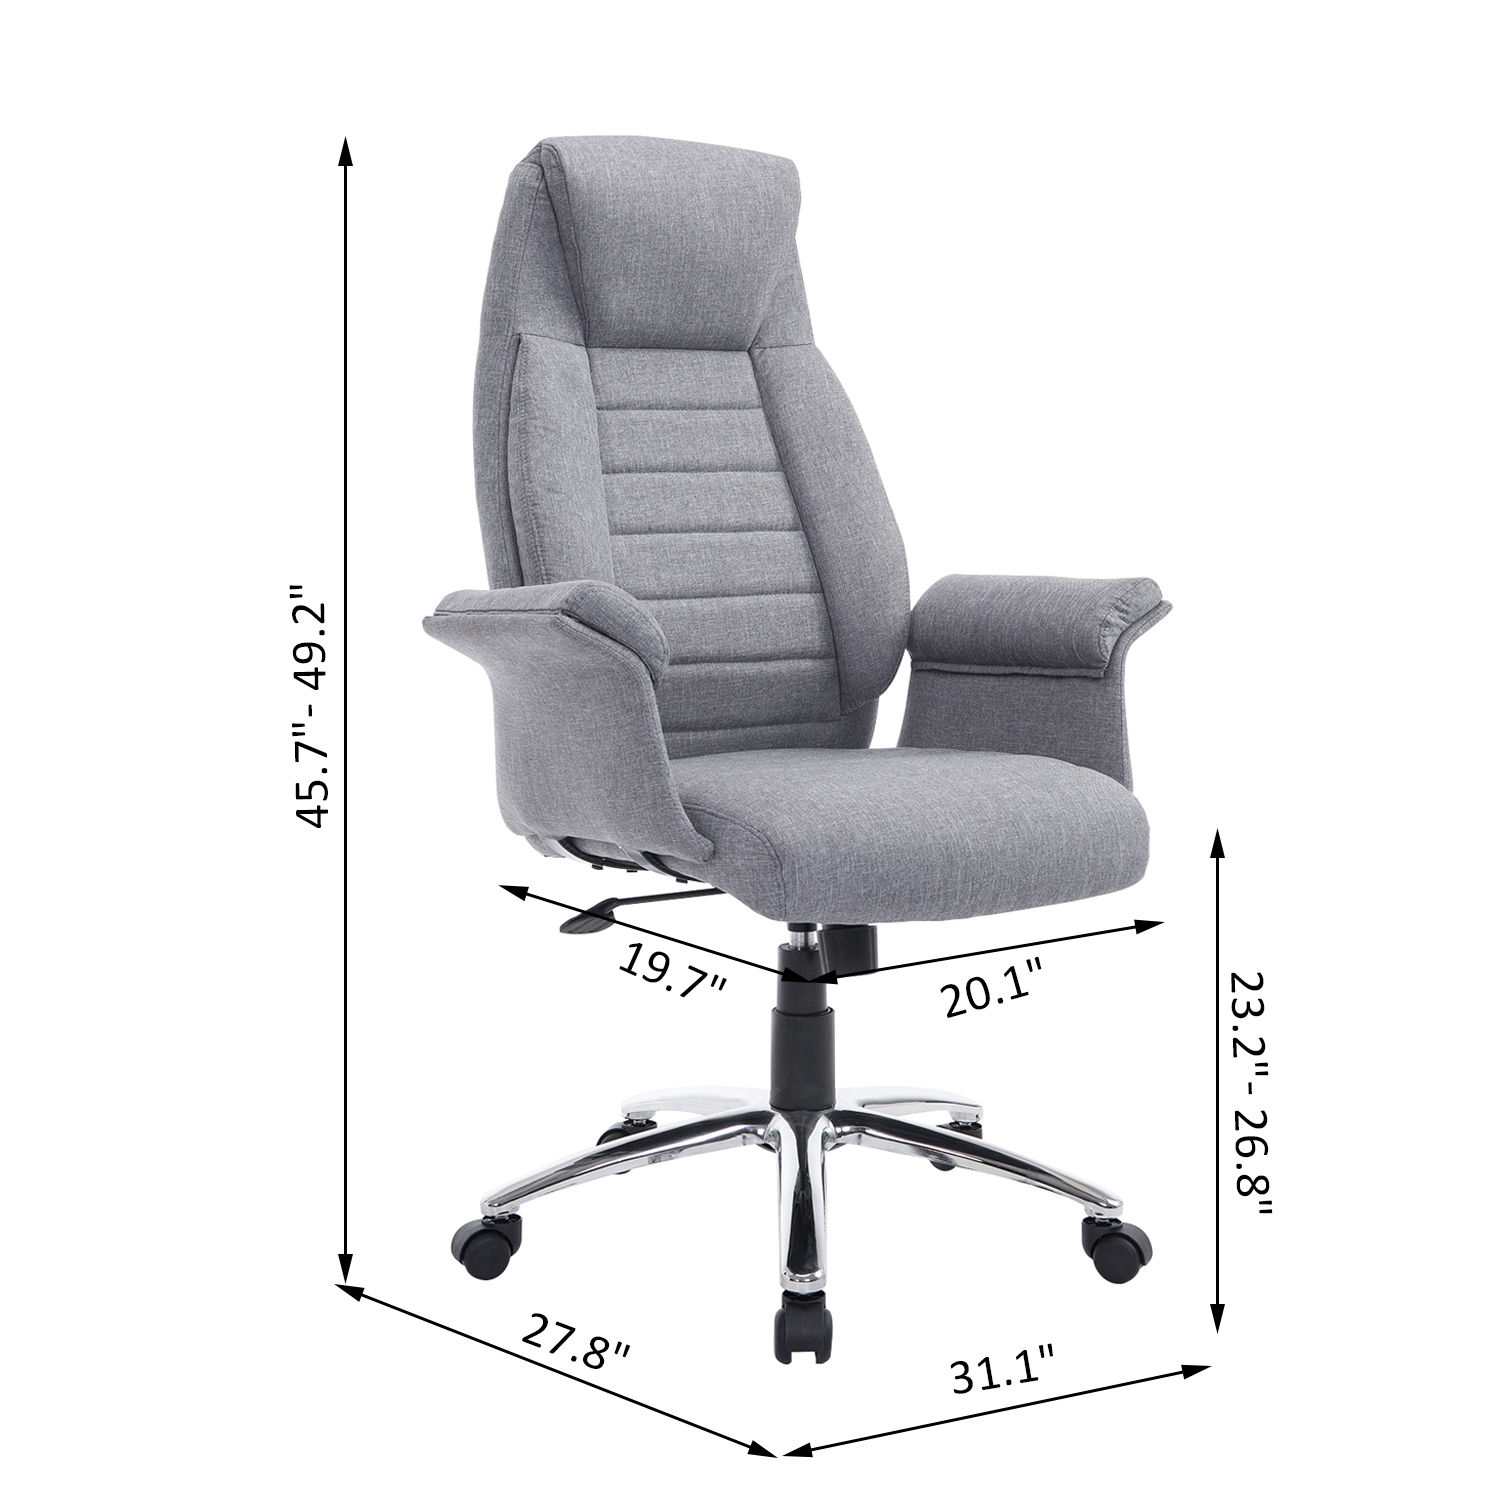 padded office chair where to buy covers for folding chairs rolling executive high back swivel